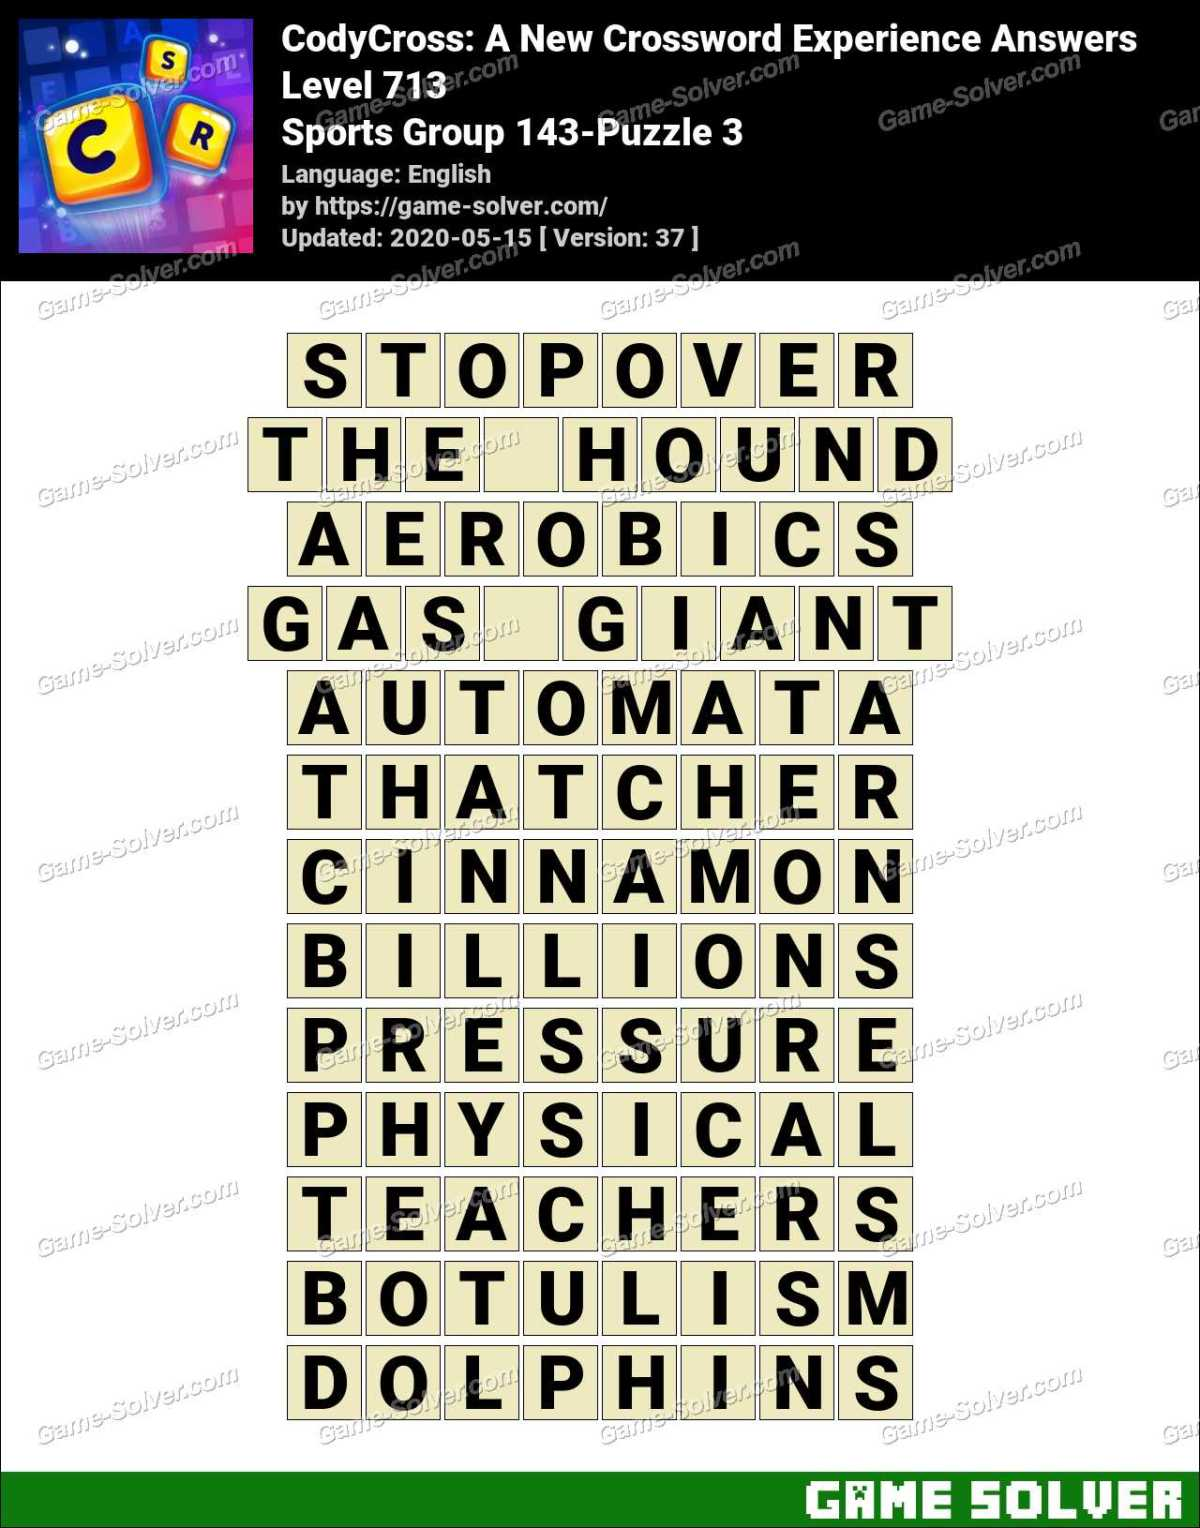 CodyCross Sports Group 143-Puzzle 3 Answers